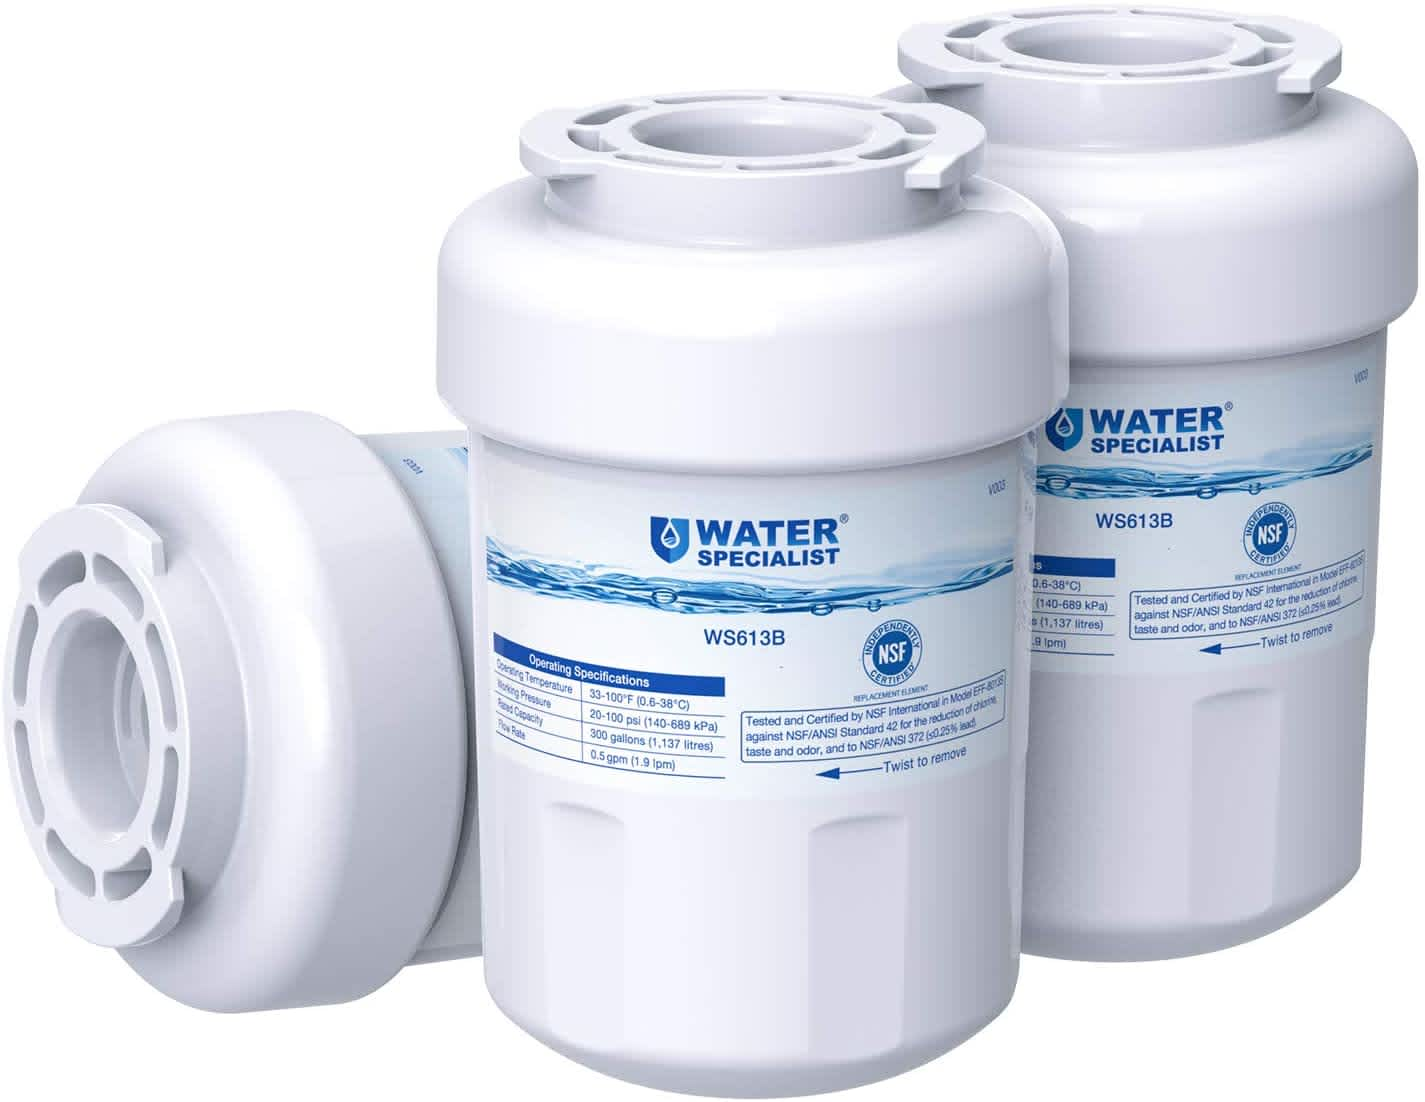 Waterspecialist MWF Refrigerator Water Filter 3-Pack